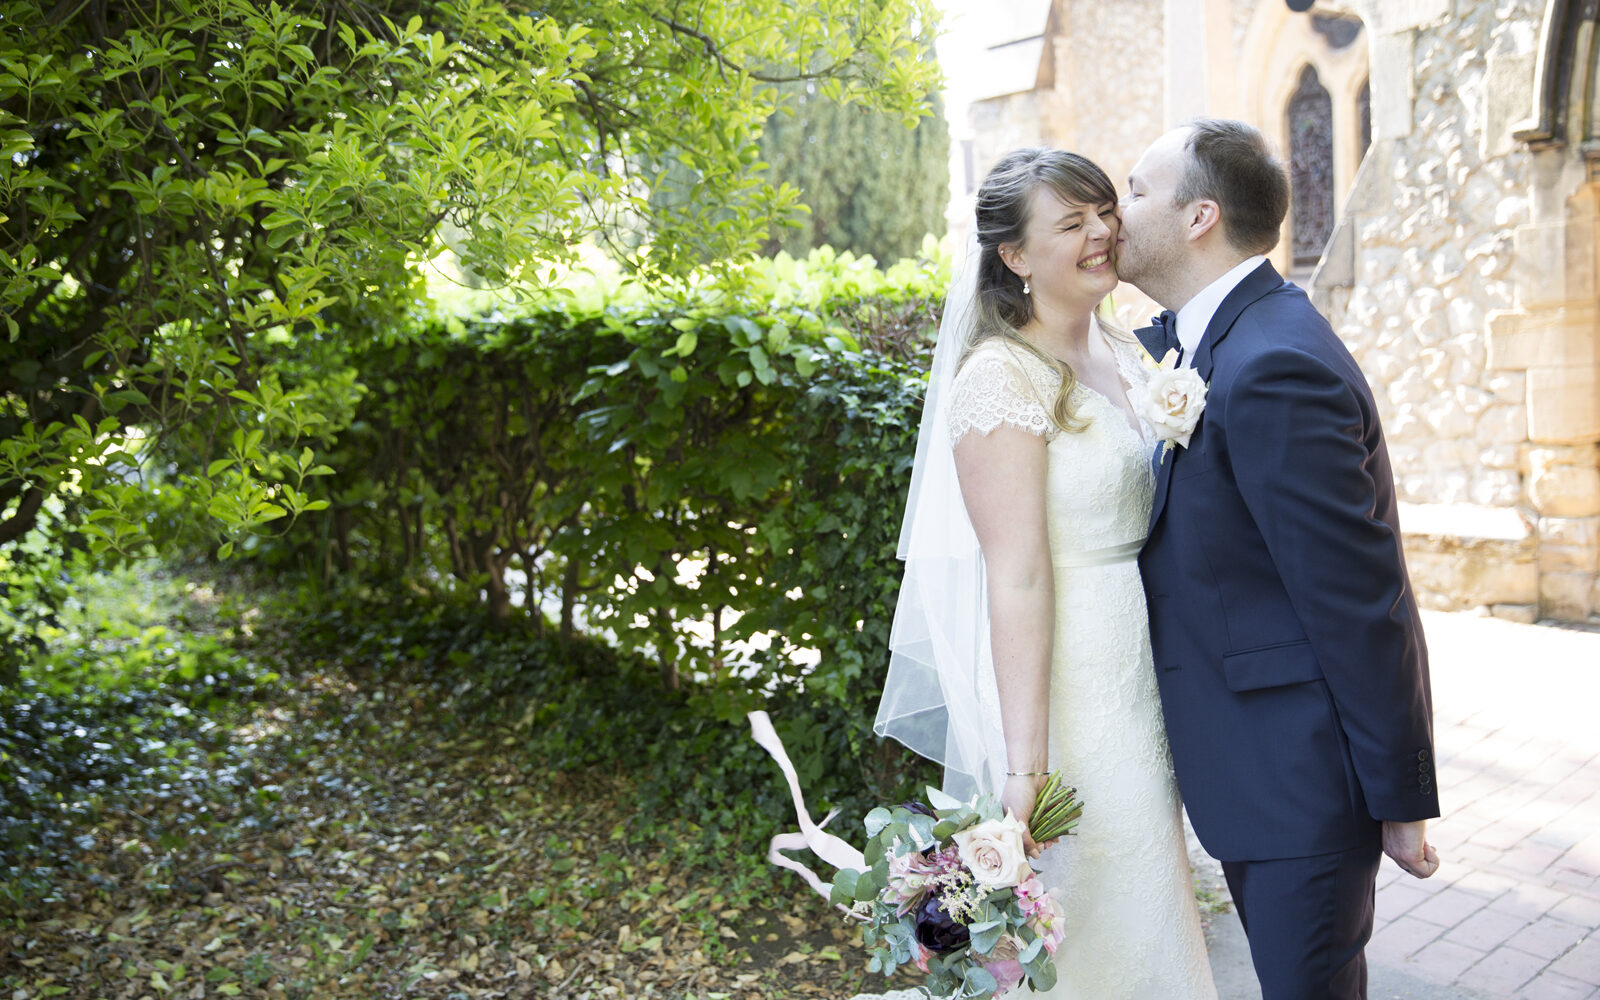 Bride and groom sharing a kiss outside St Stephen's Church in Tonbridge, Kent. Captured by Tonbridge wedding photographer Victoria Green.